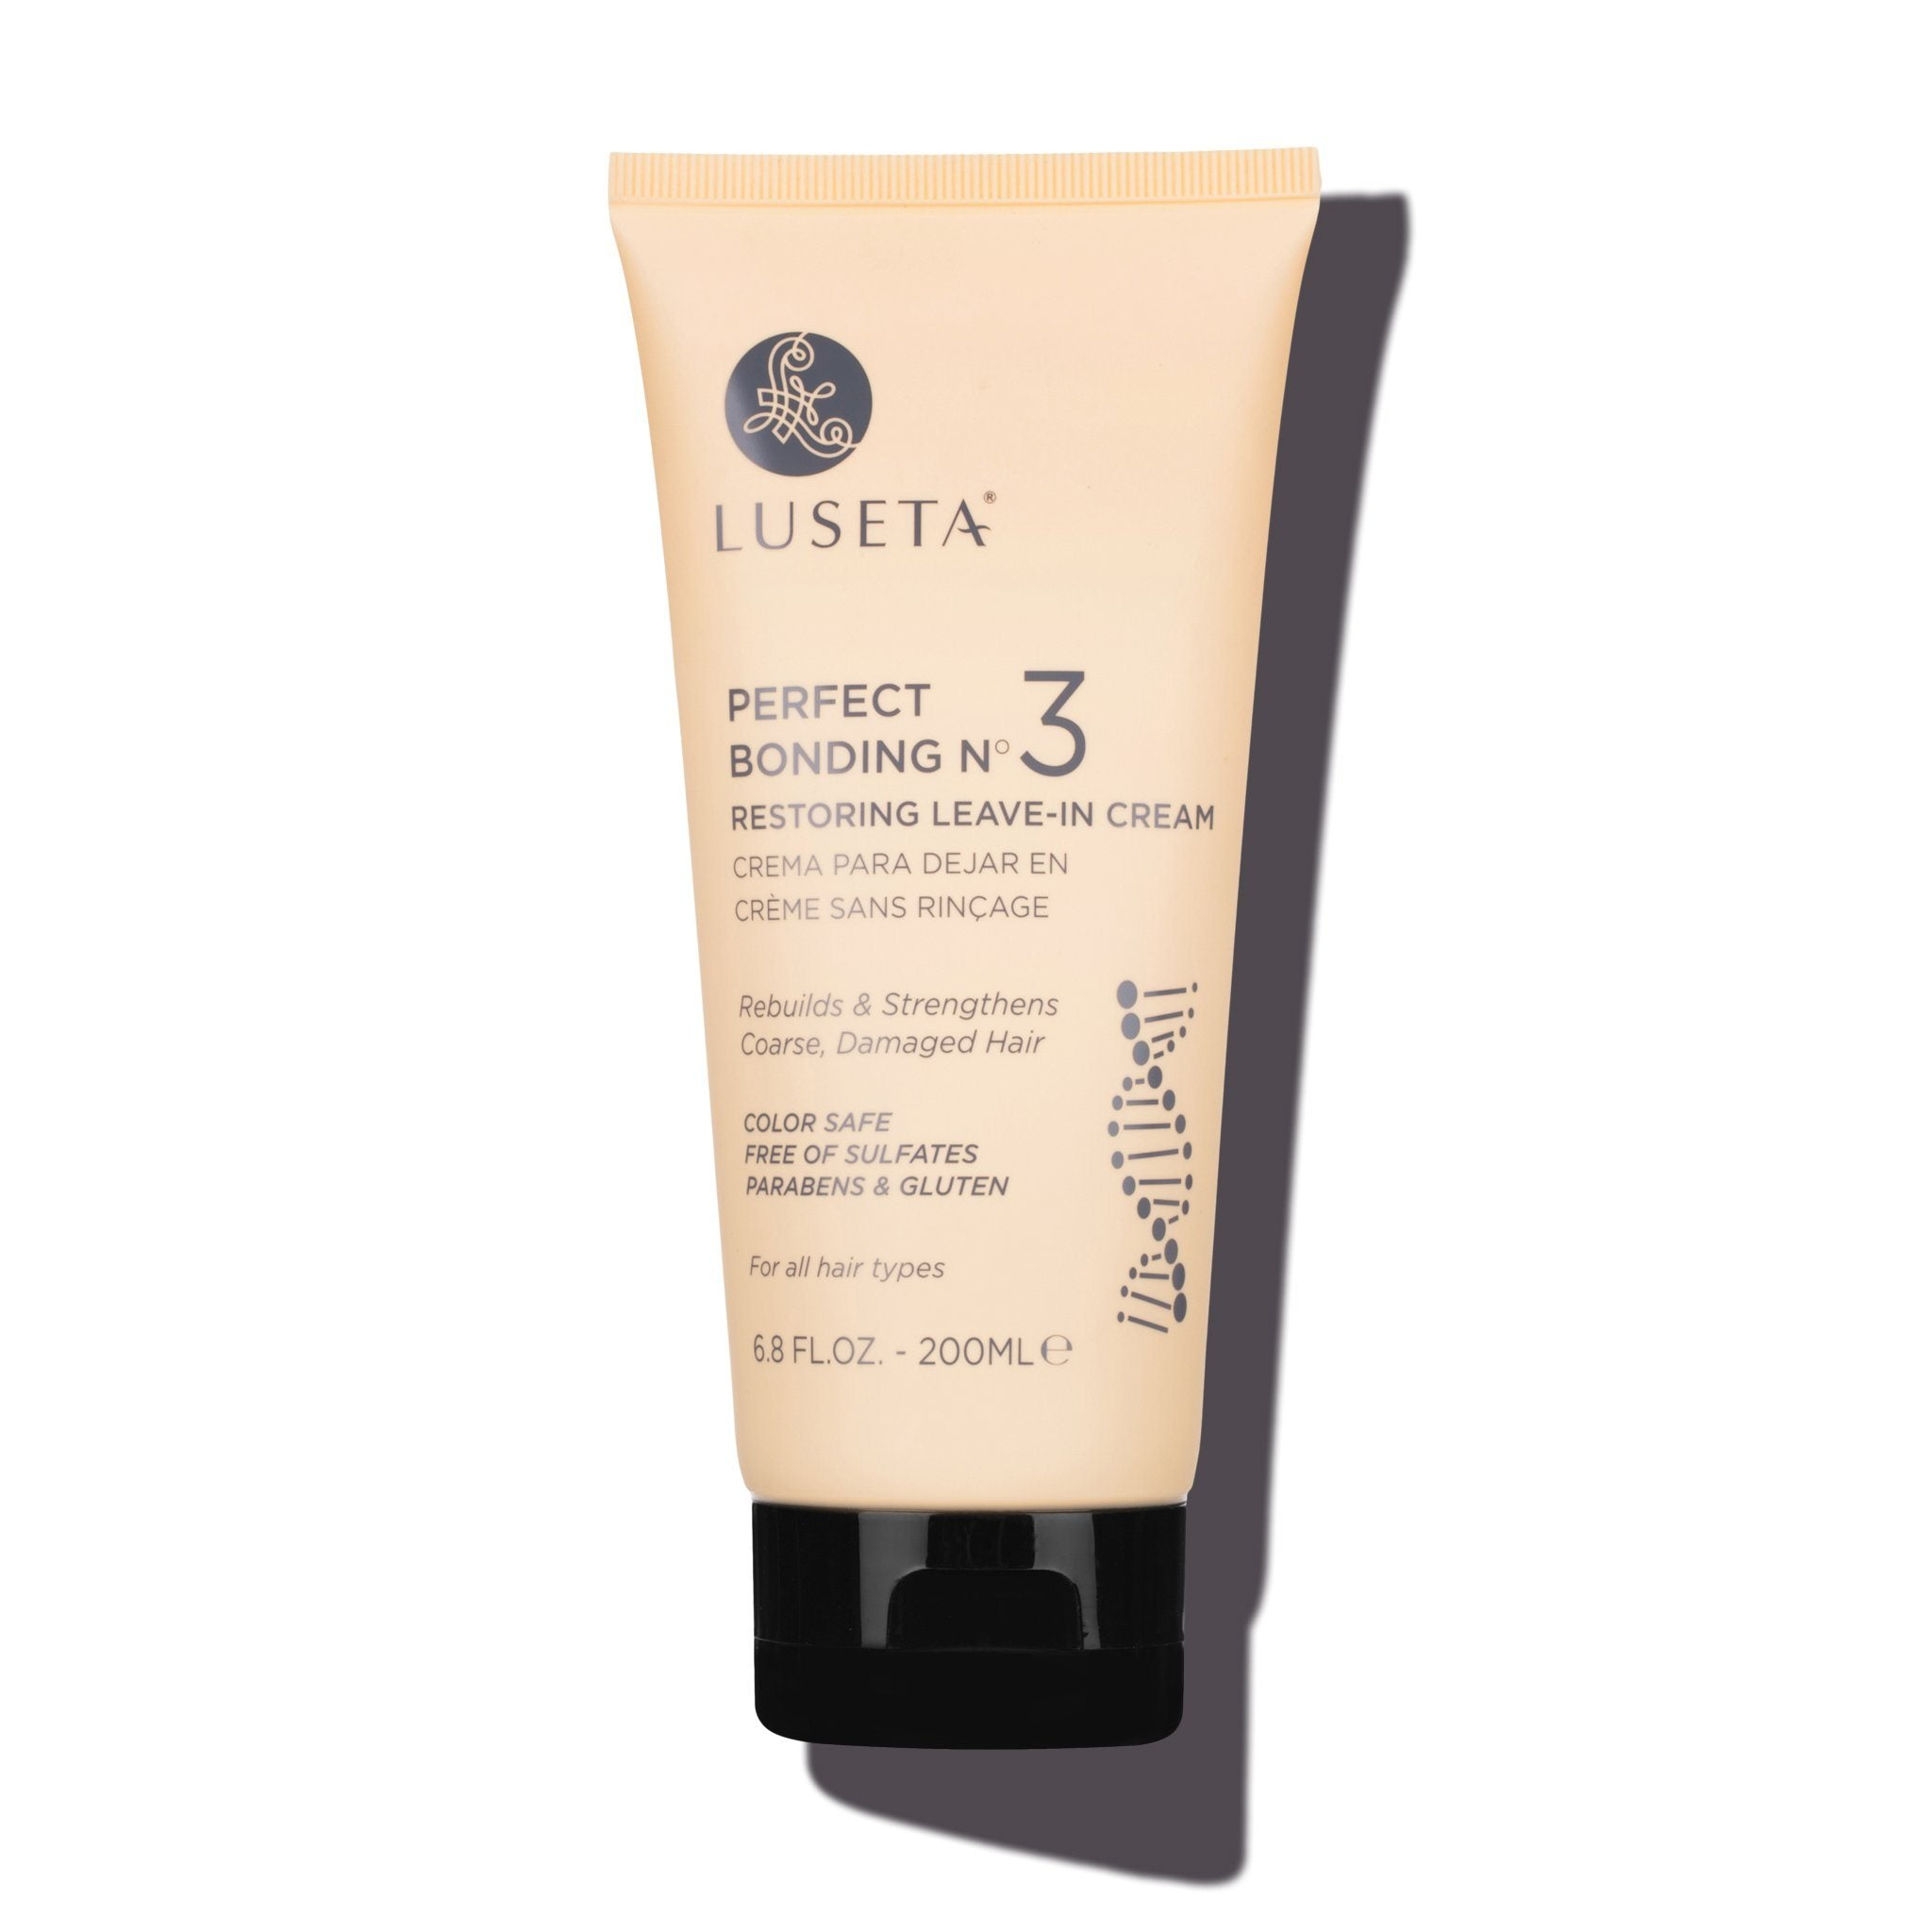 Perfect Bonding No.3 Restoring Leave-in Cream - Luseta Beauty